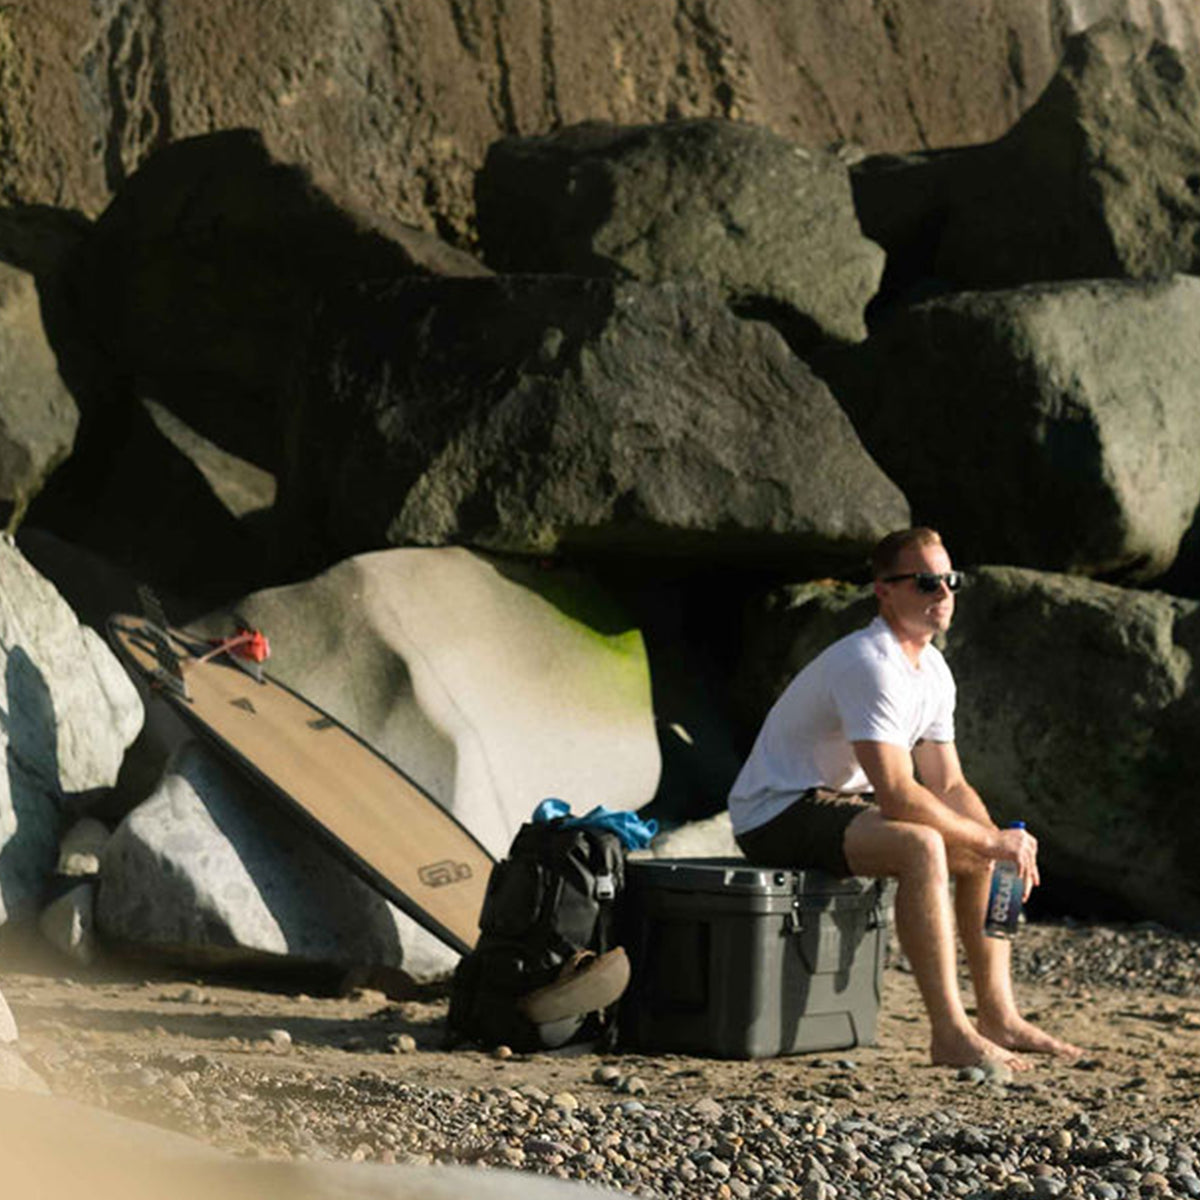 Titan Deep Freeze® 55Q Premium Ice Chest - Gray - Lifestyle, taking a break on the cooler at the beach